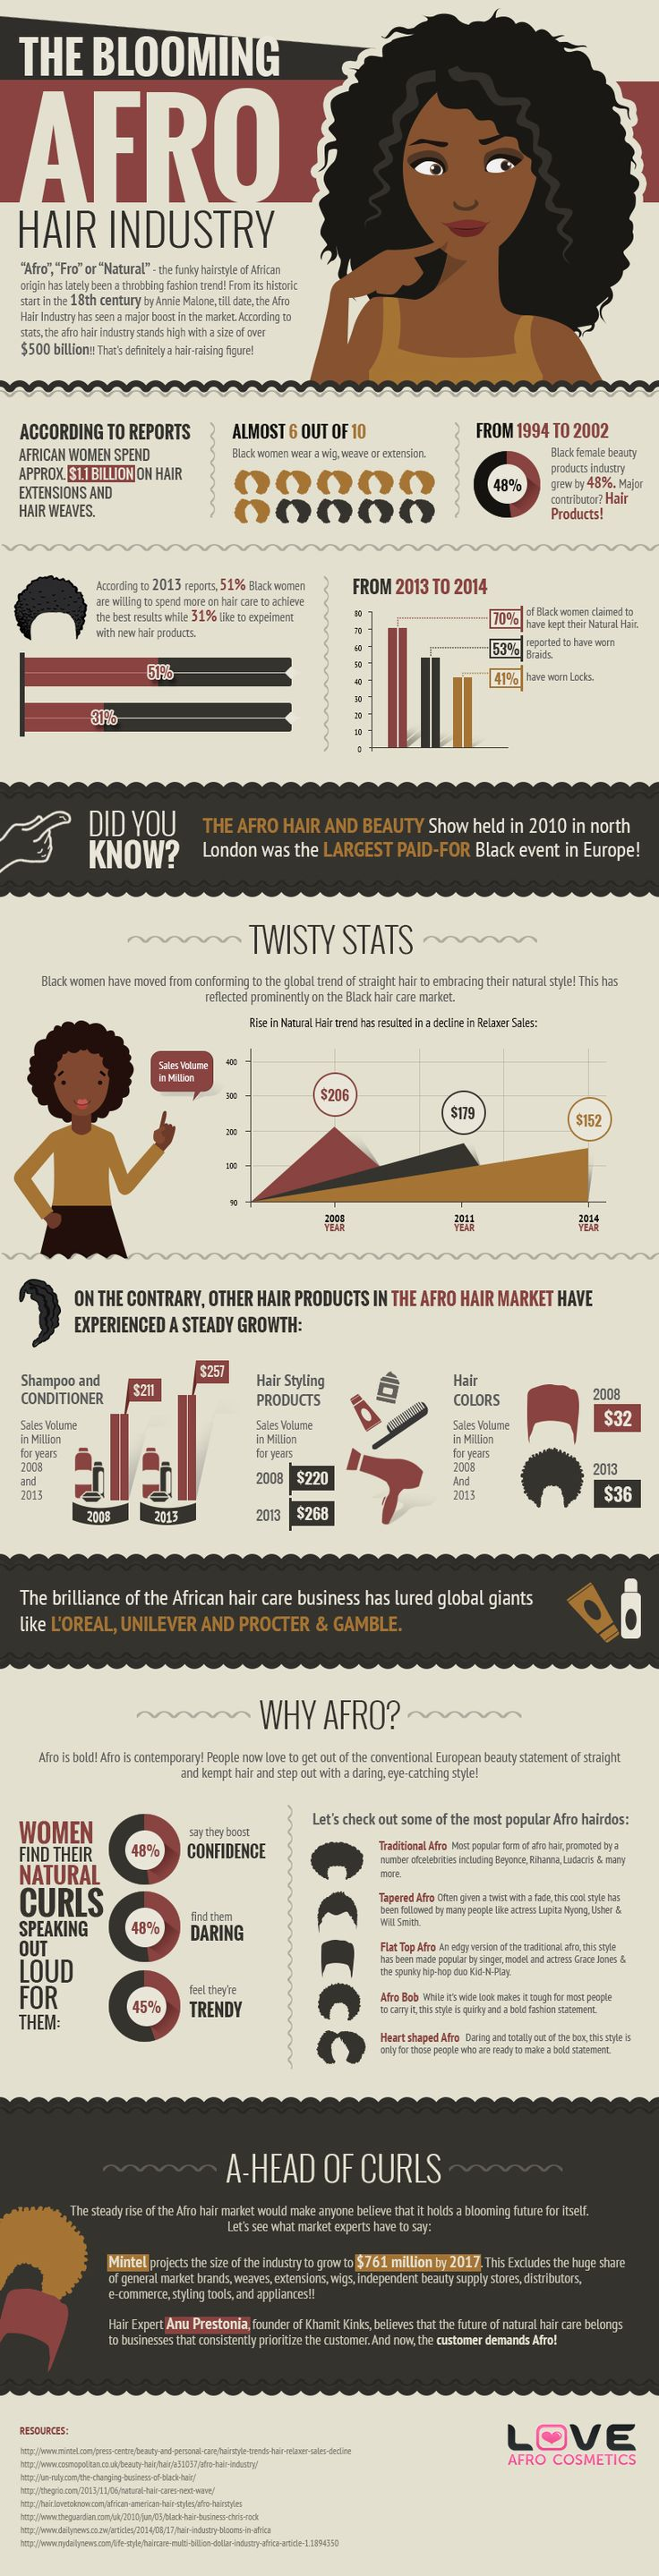 Afro hair industry stats                                                                                                                                                                                 More